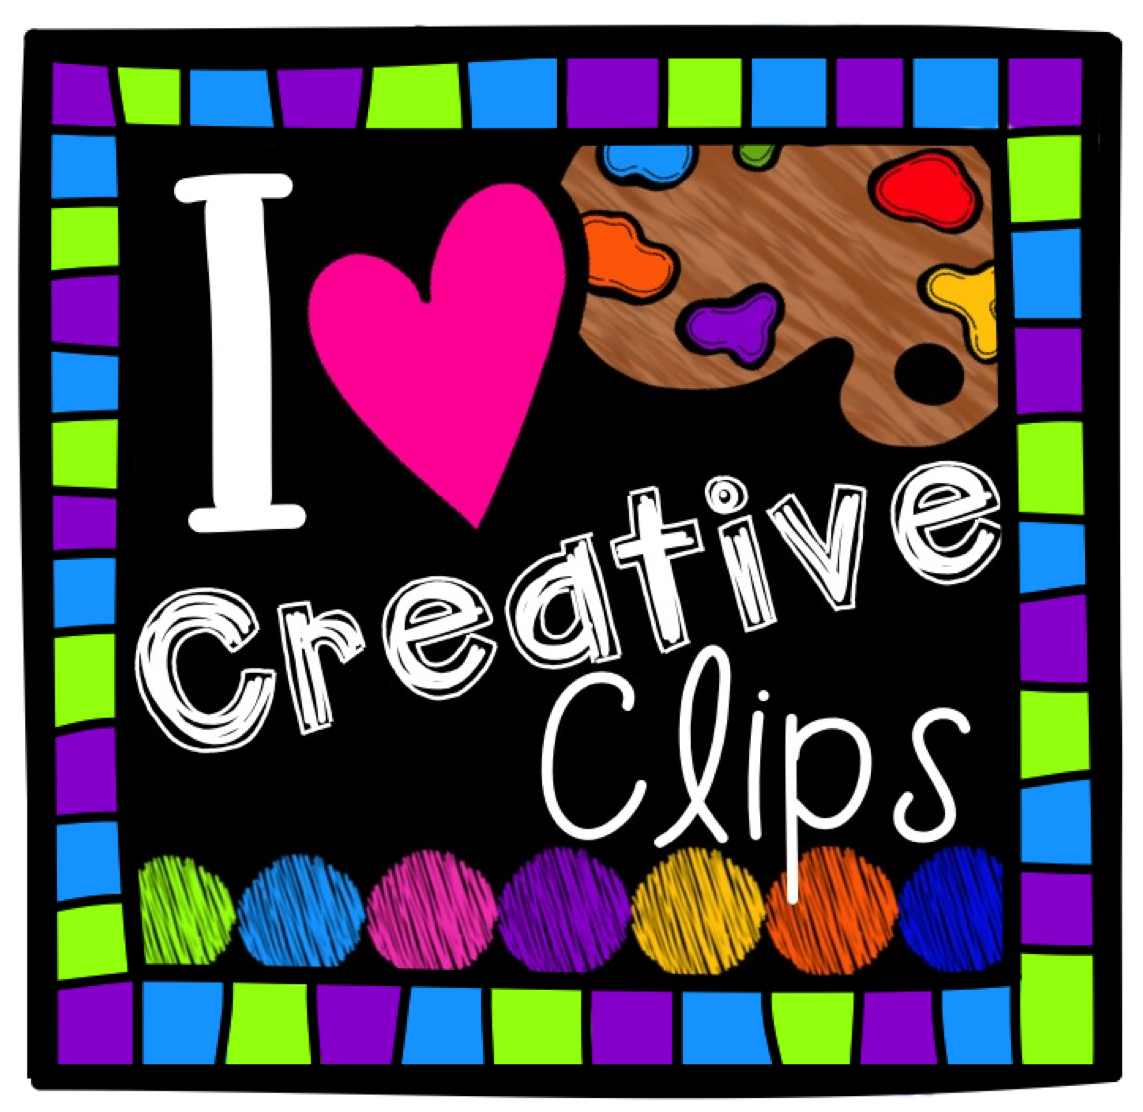 Adorable clip art and frames